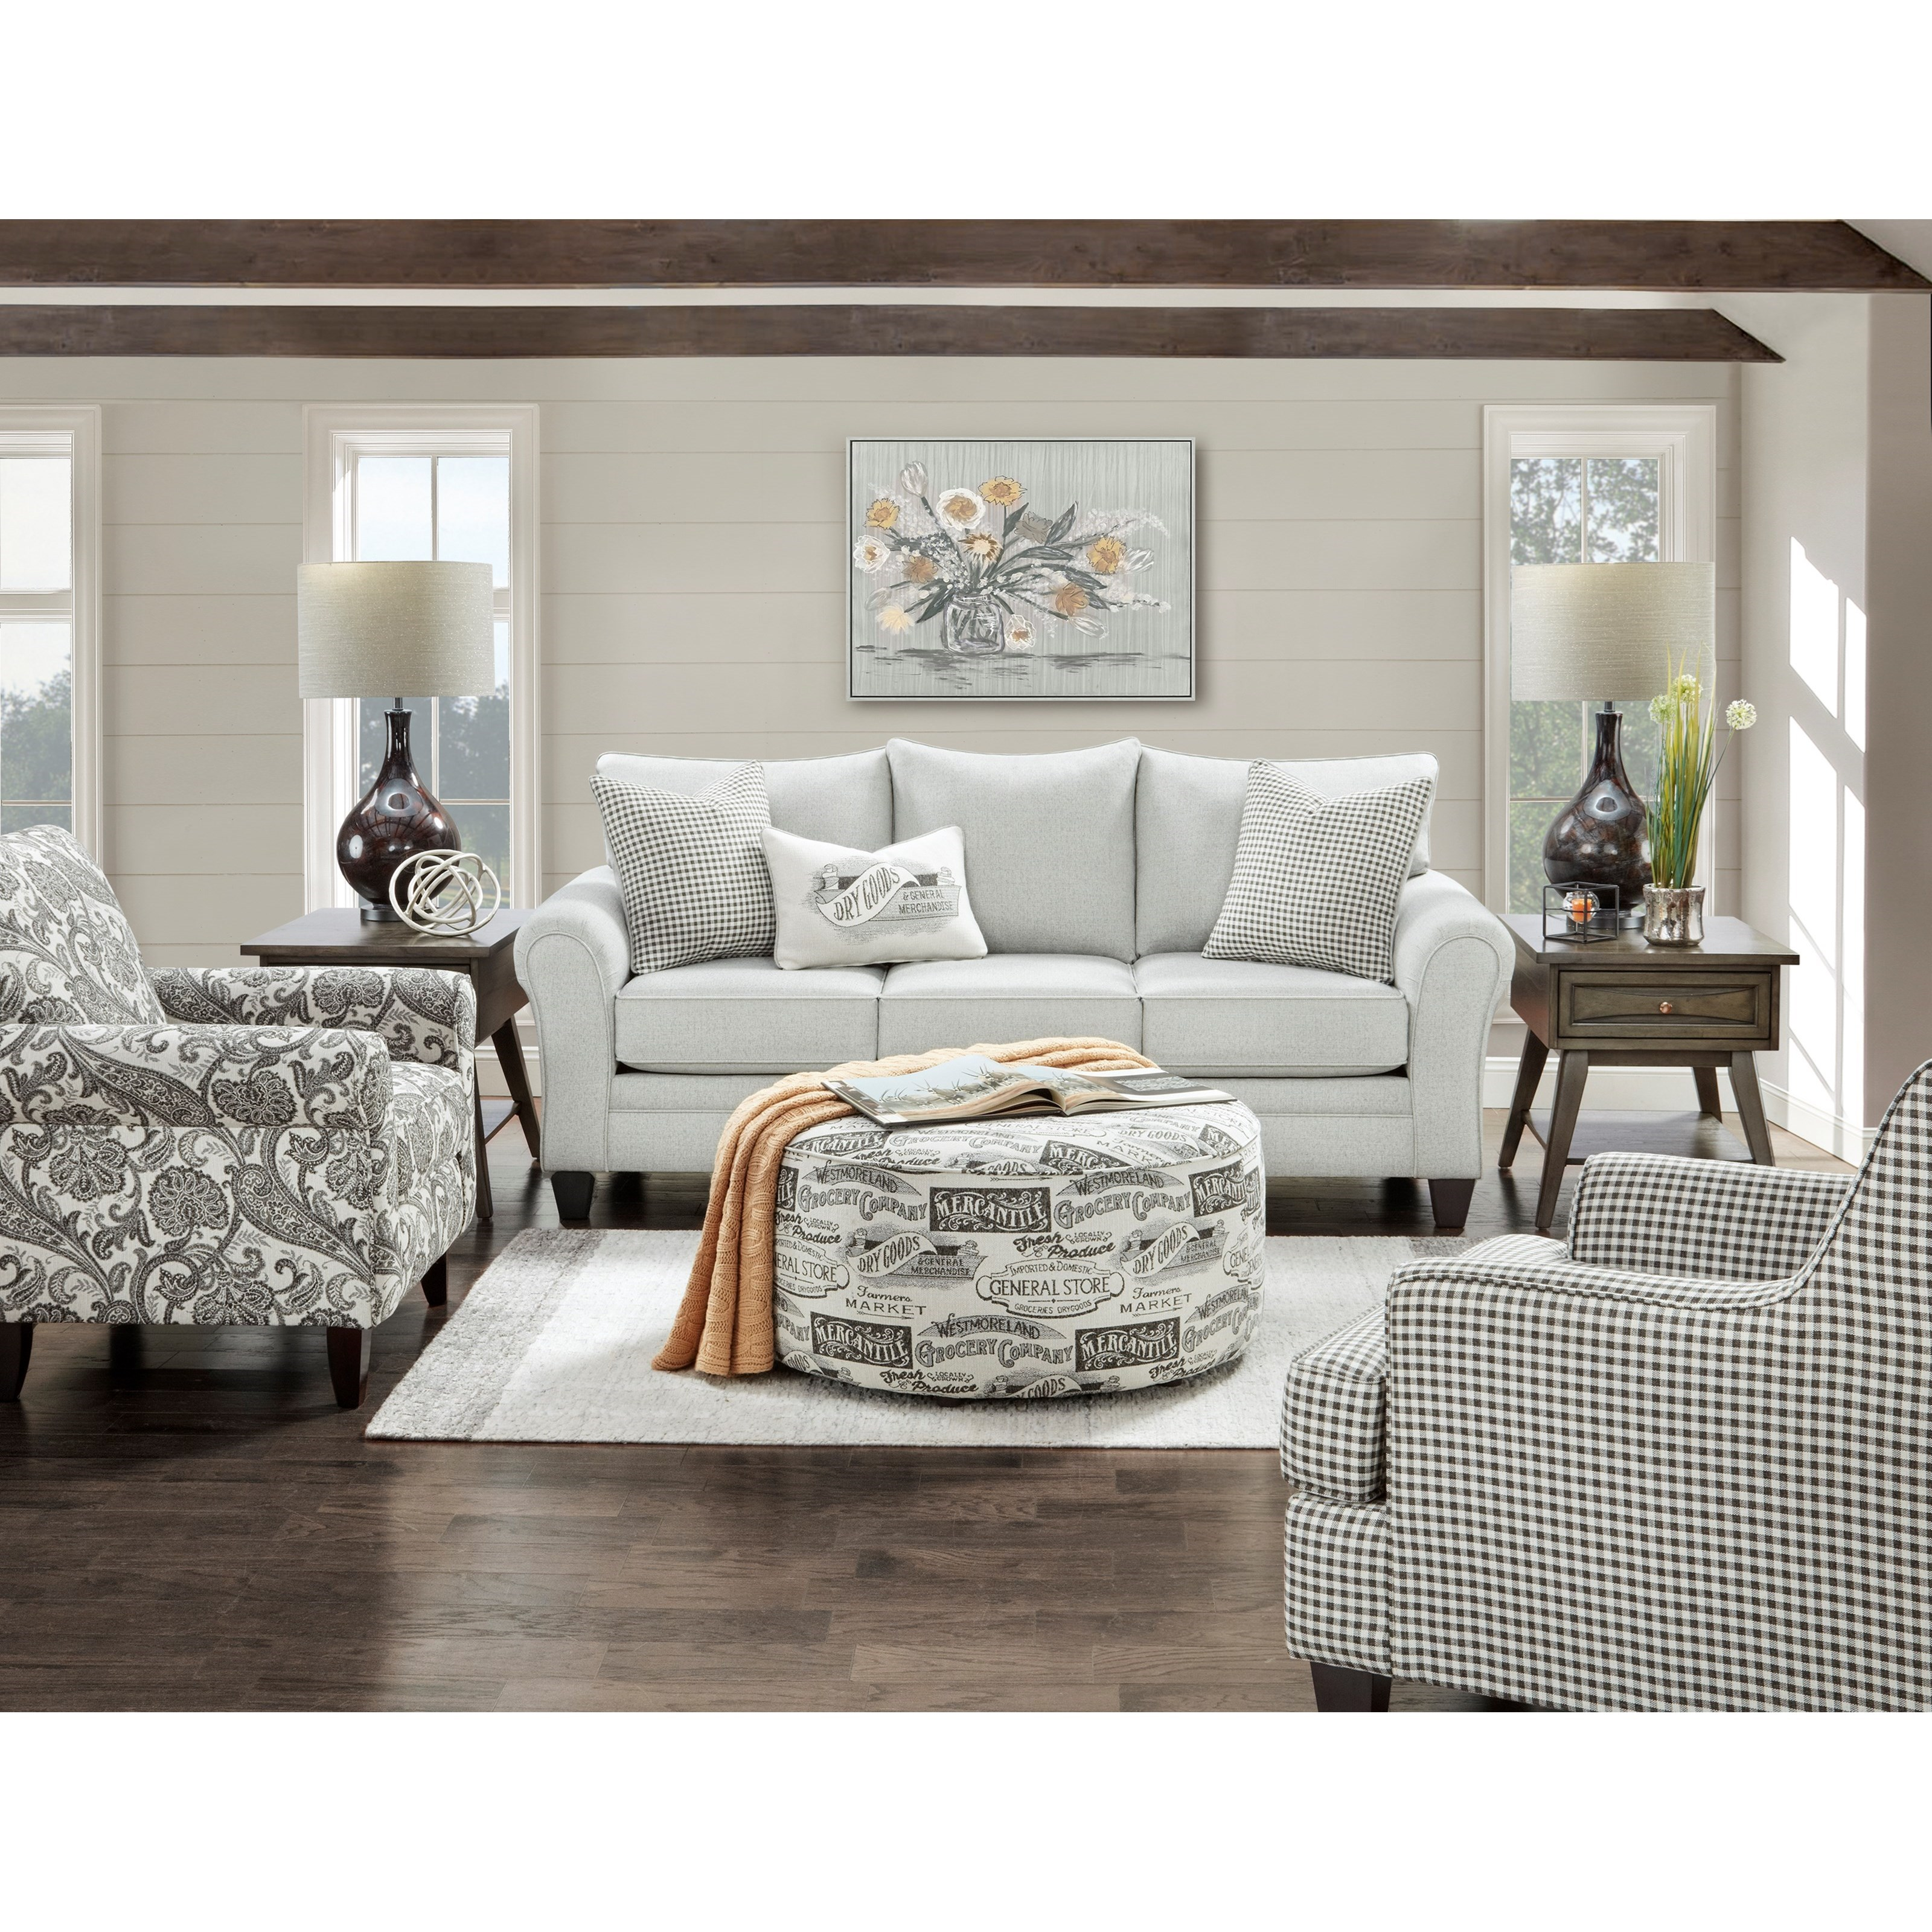 44-00 Living Room Group by FN at Lindy's Furniture Company